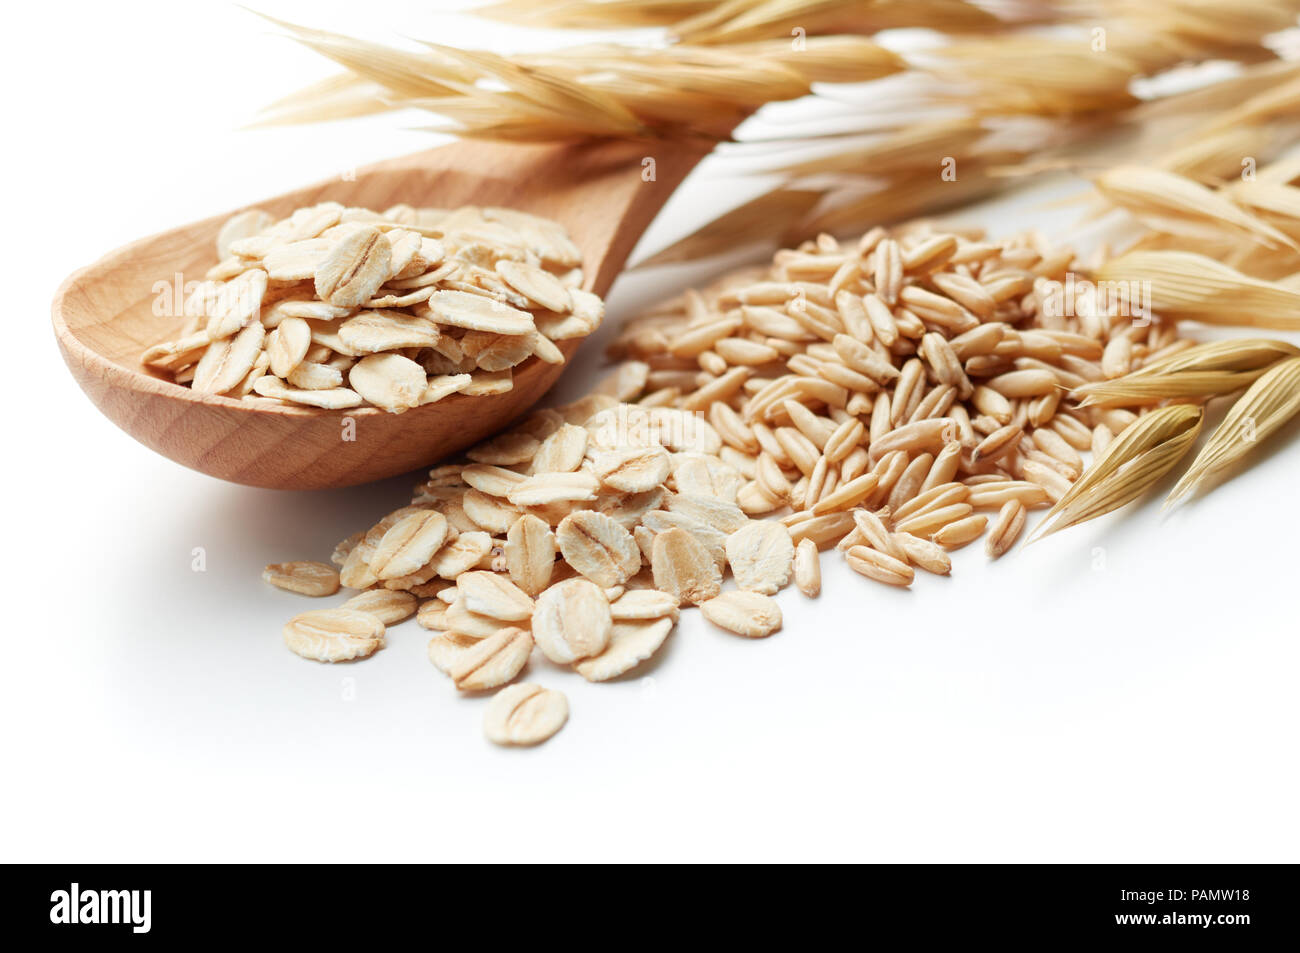 scoop and pile of oatmeal with its unprocessed grains and plant - Stock Image